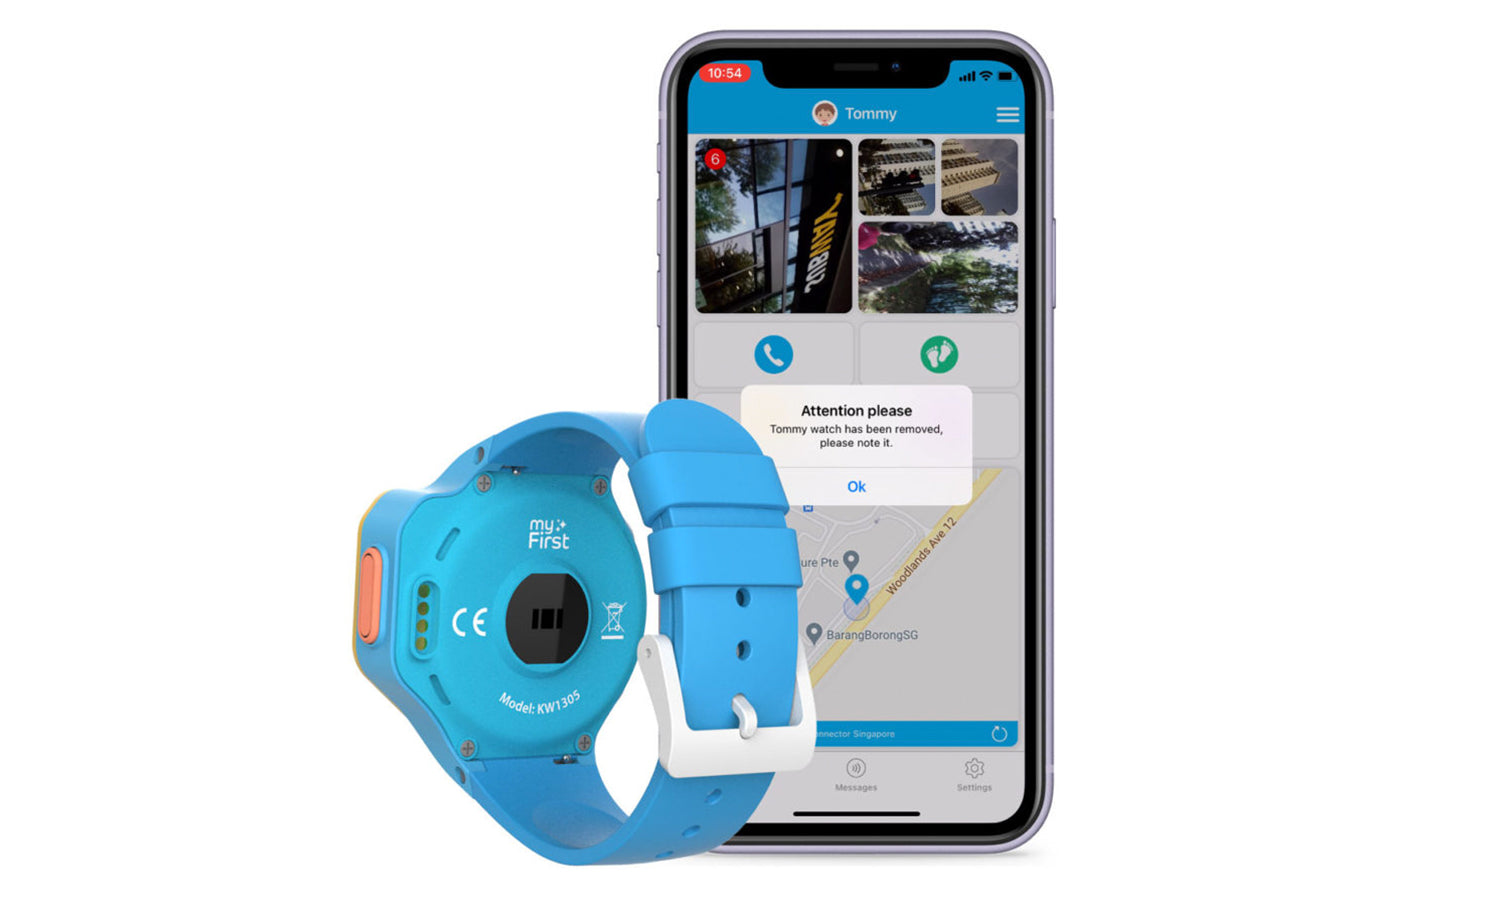 myFirst Fone R1 - Smart watch phone for kids with gps tracker and MP3 Player with Removal Detect